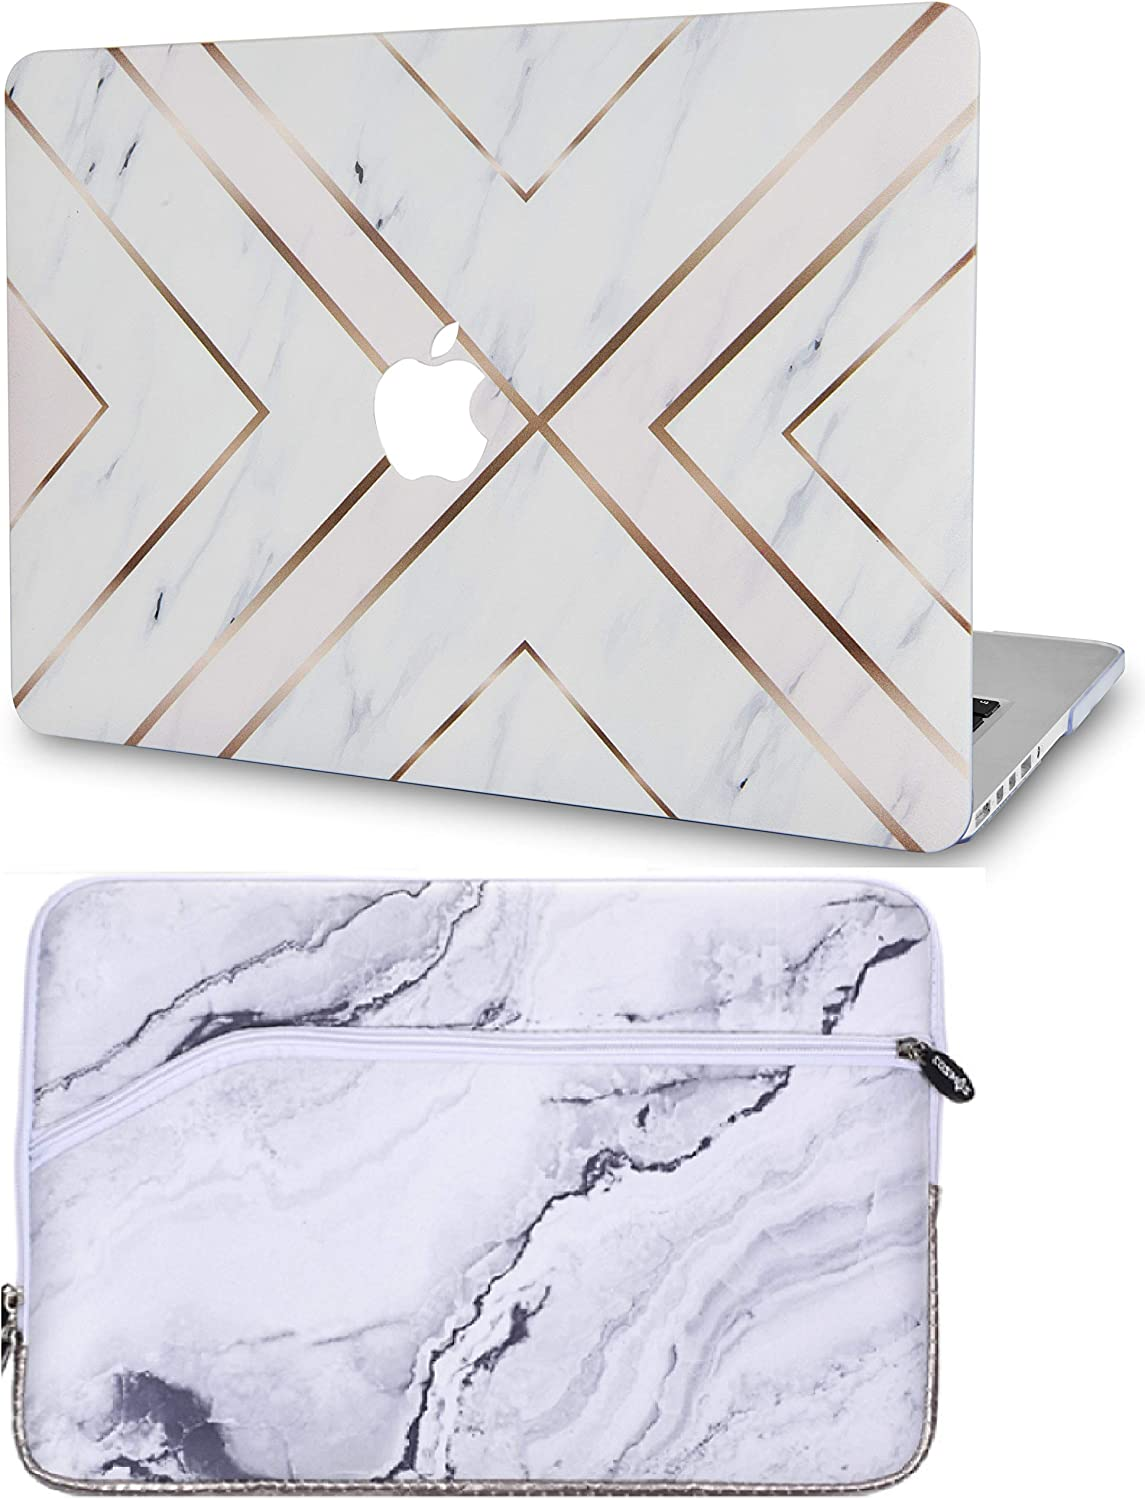 """LuvCase2in1LaptopCasewithSleeveforMacBookPro 13"""" (2016-2020 Release) w/wo Touch Bar A2251/A2289/A2159/A1989/A1706/A1708 RubberizedPlasticHardShell Cover (White Marble Gold Stripes)"""